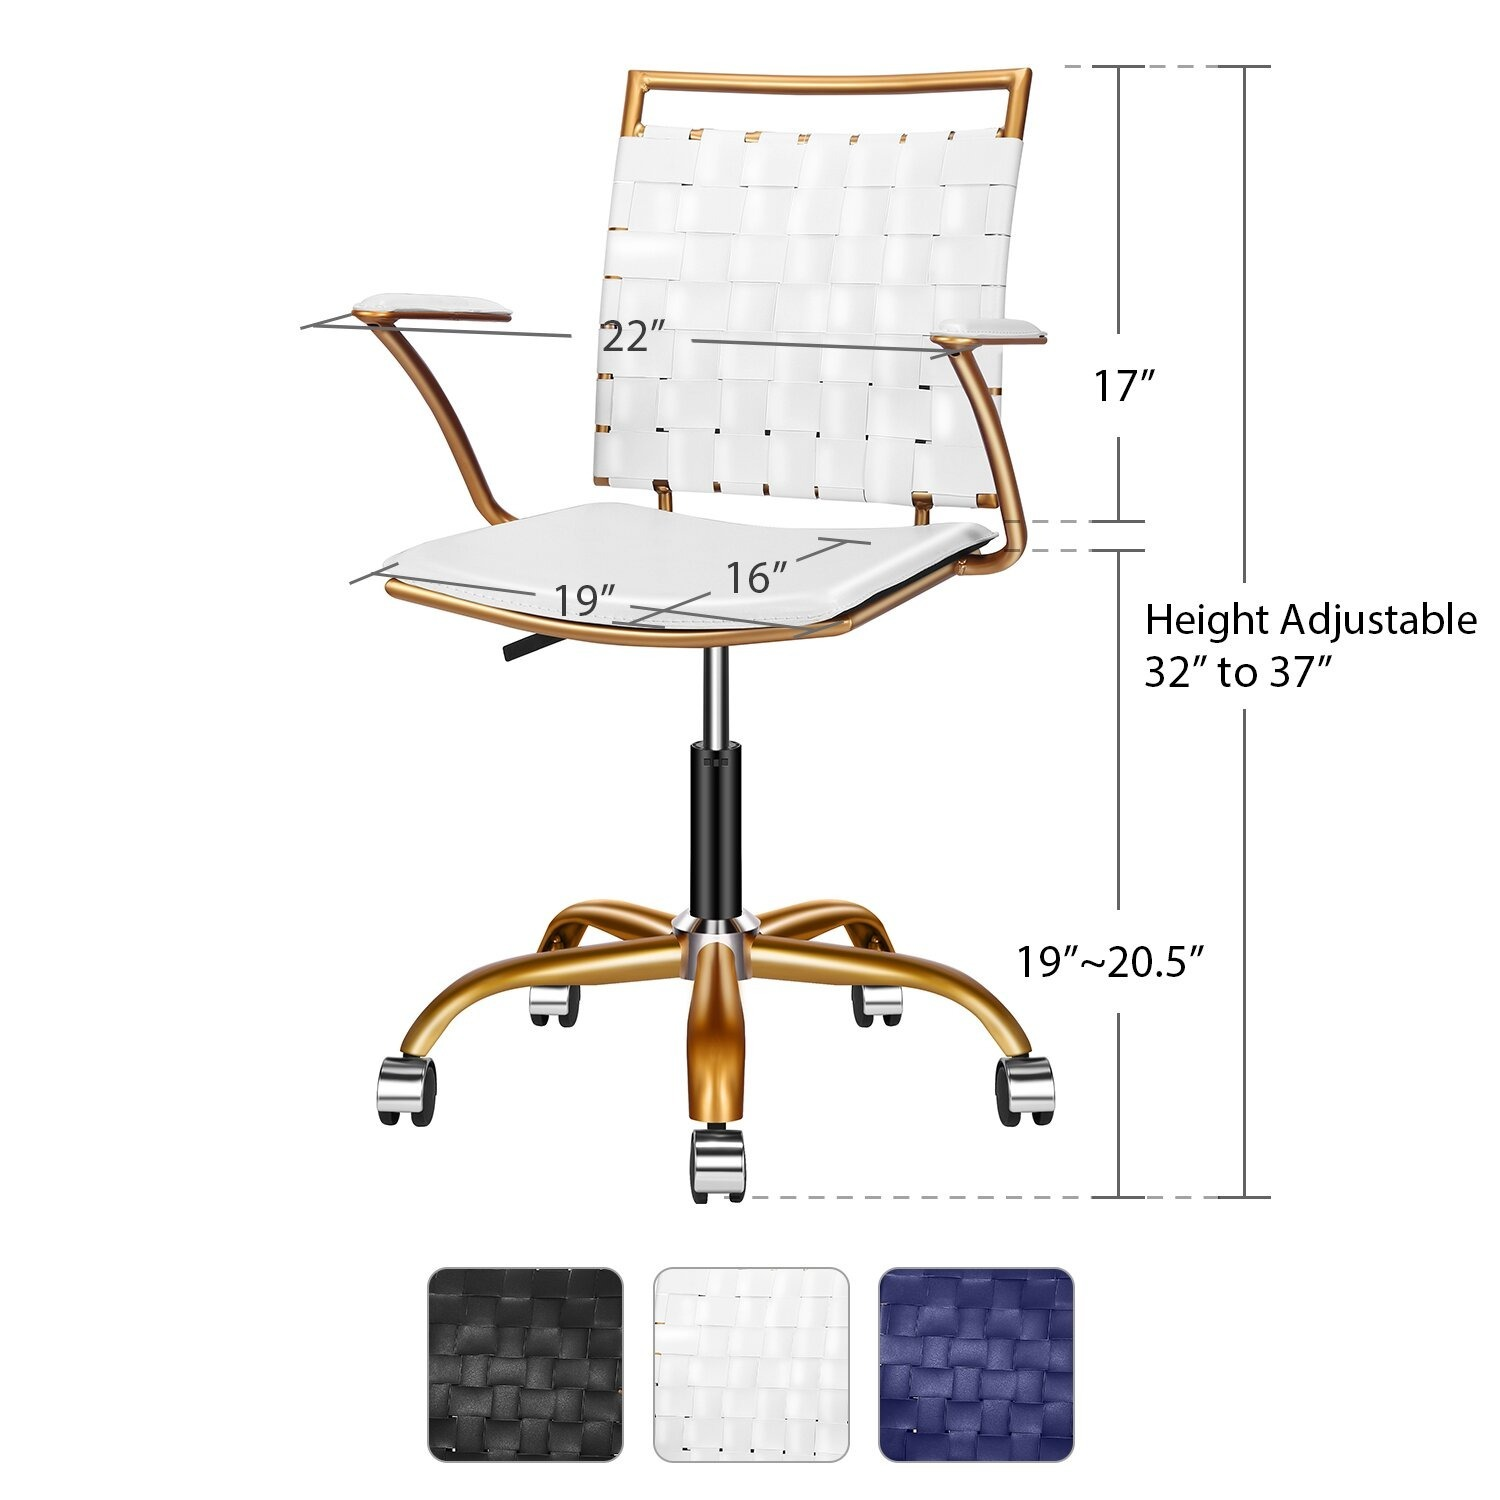 Wayfair Woven White and Gold Desk Chair - image-2